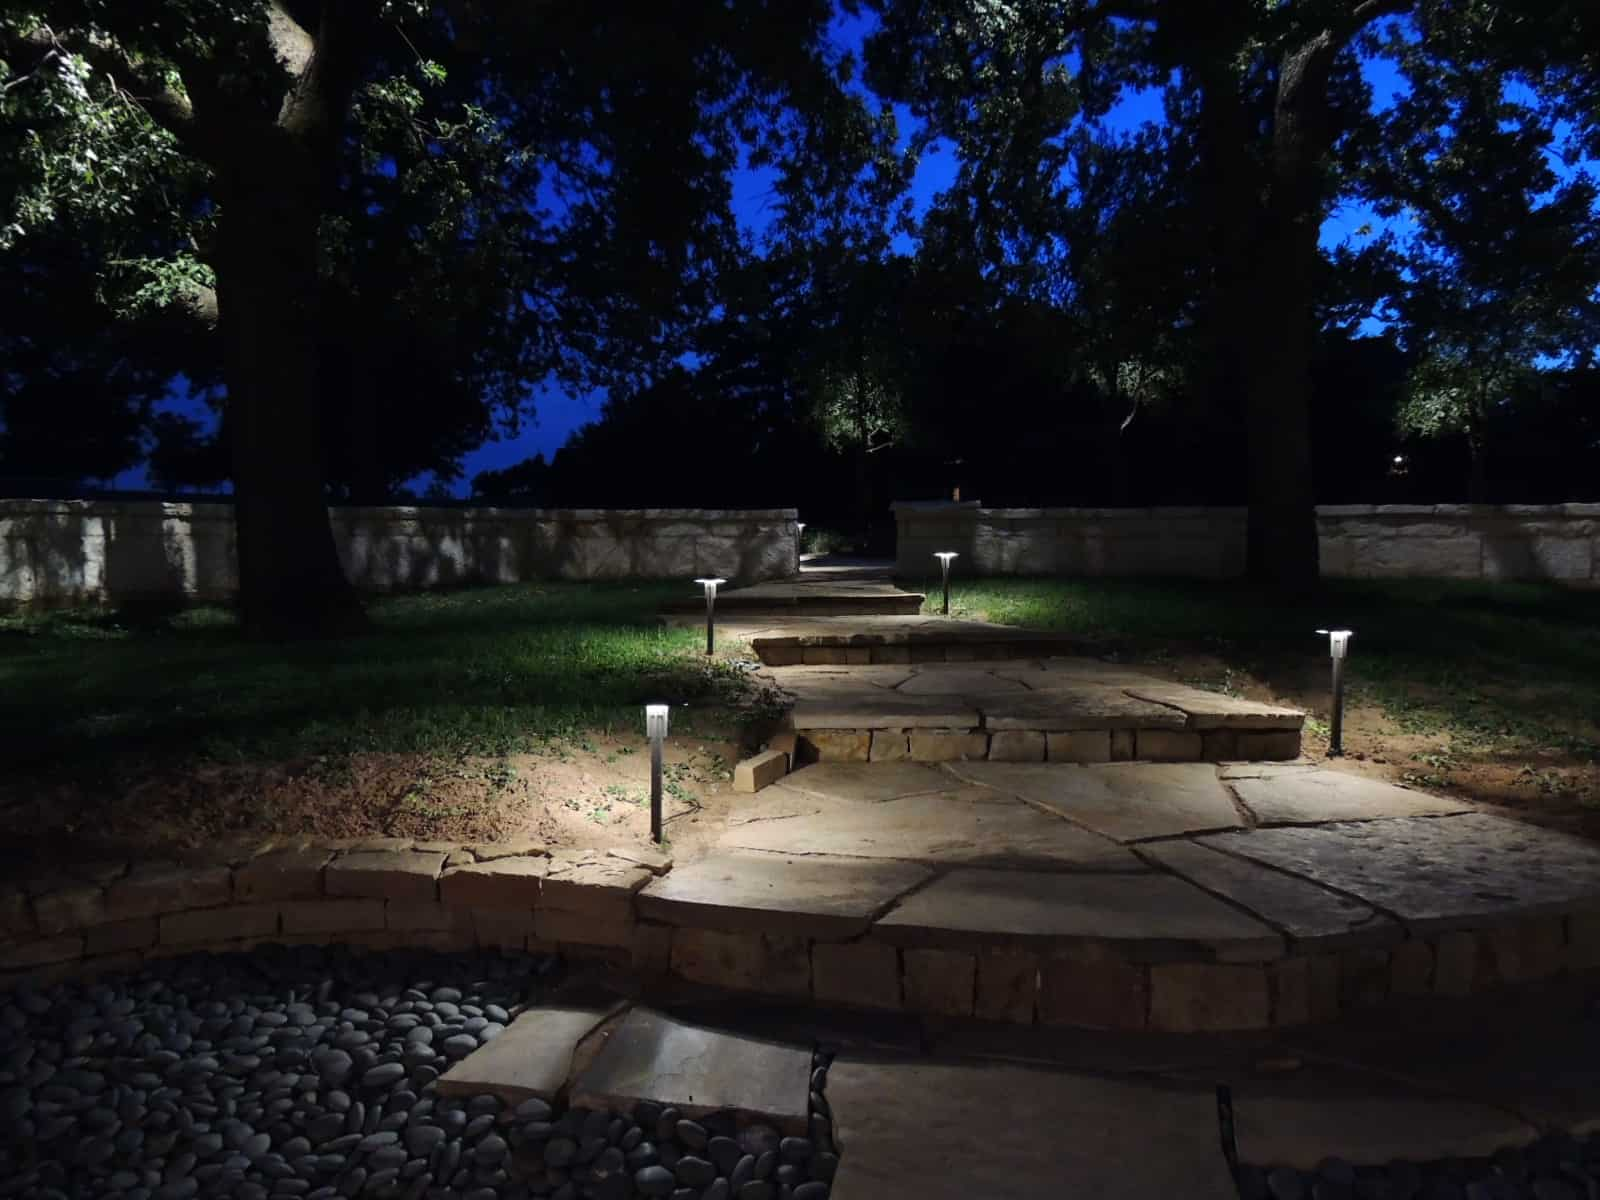 LED Light fixtures line a stone pathway